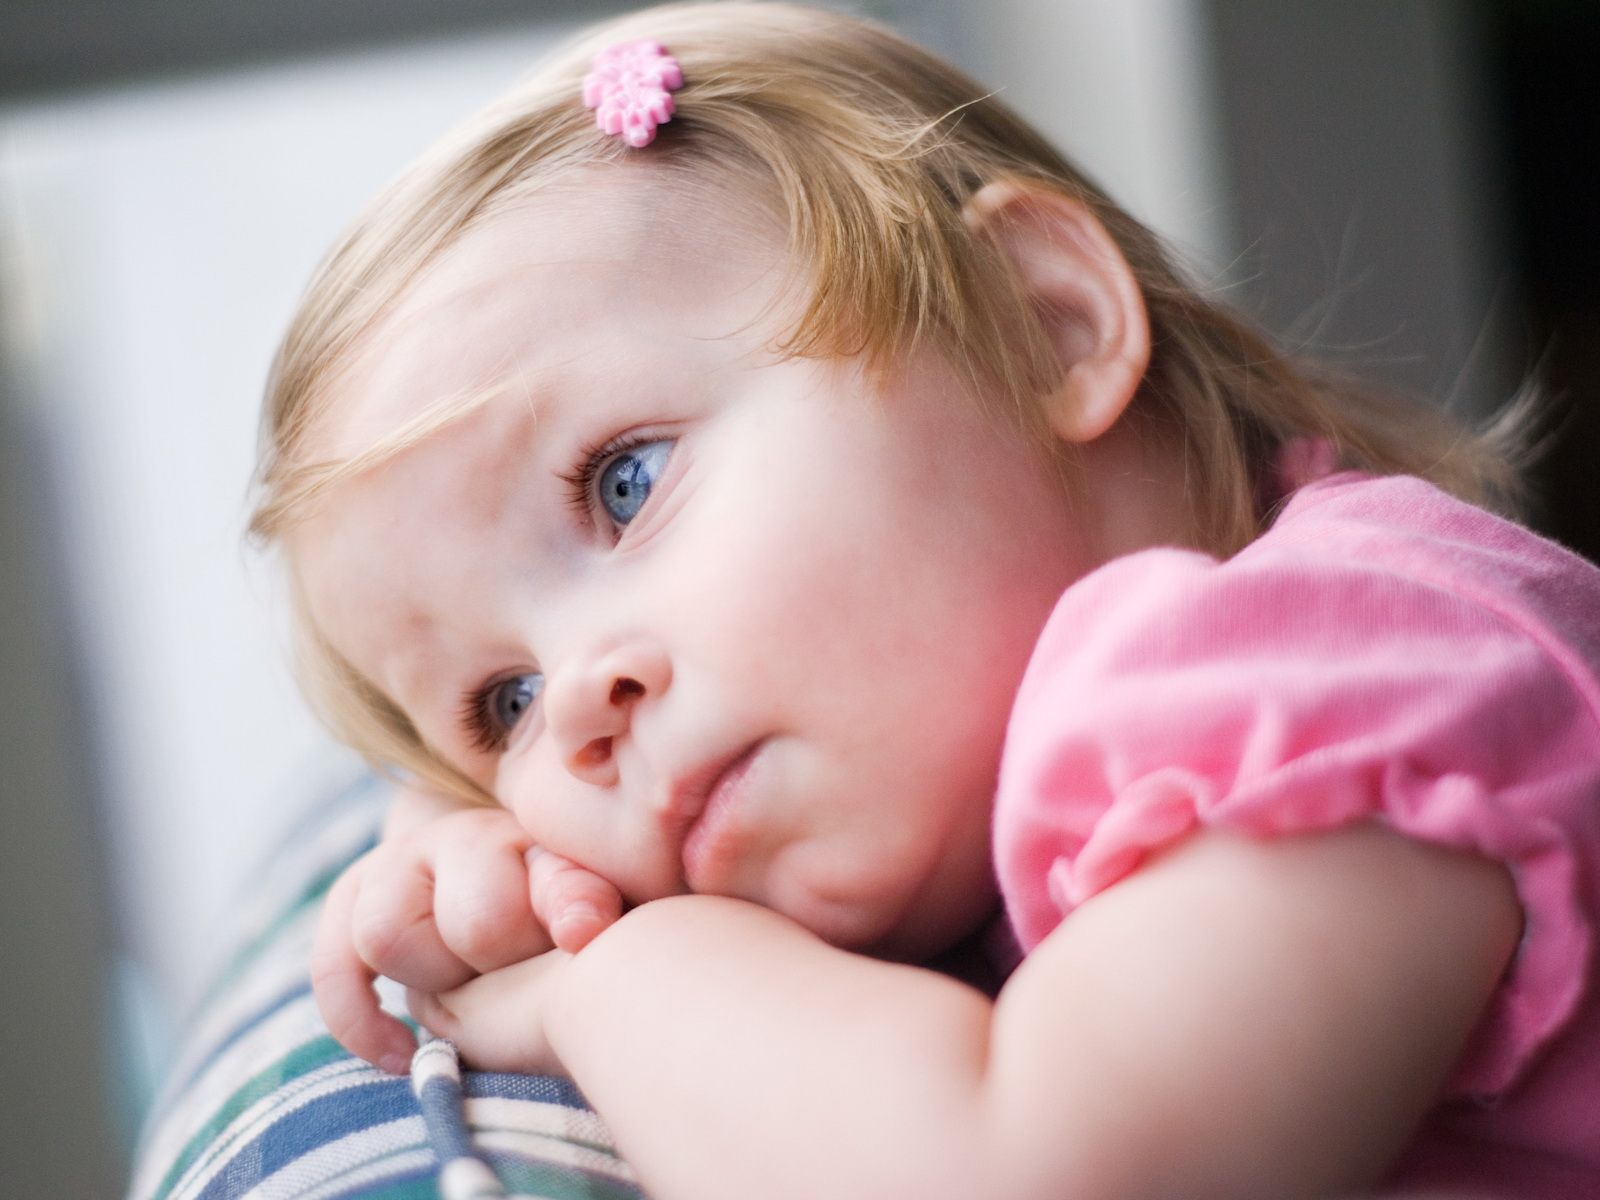 baby pics babbies wallpapers free download cute kids wallpapers